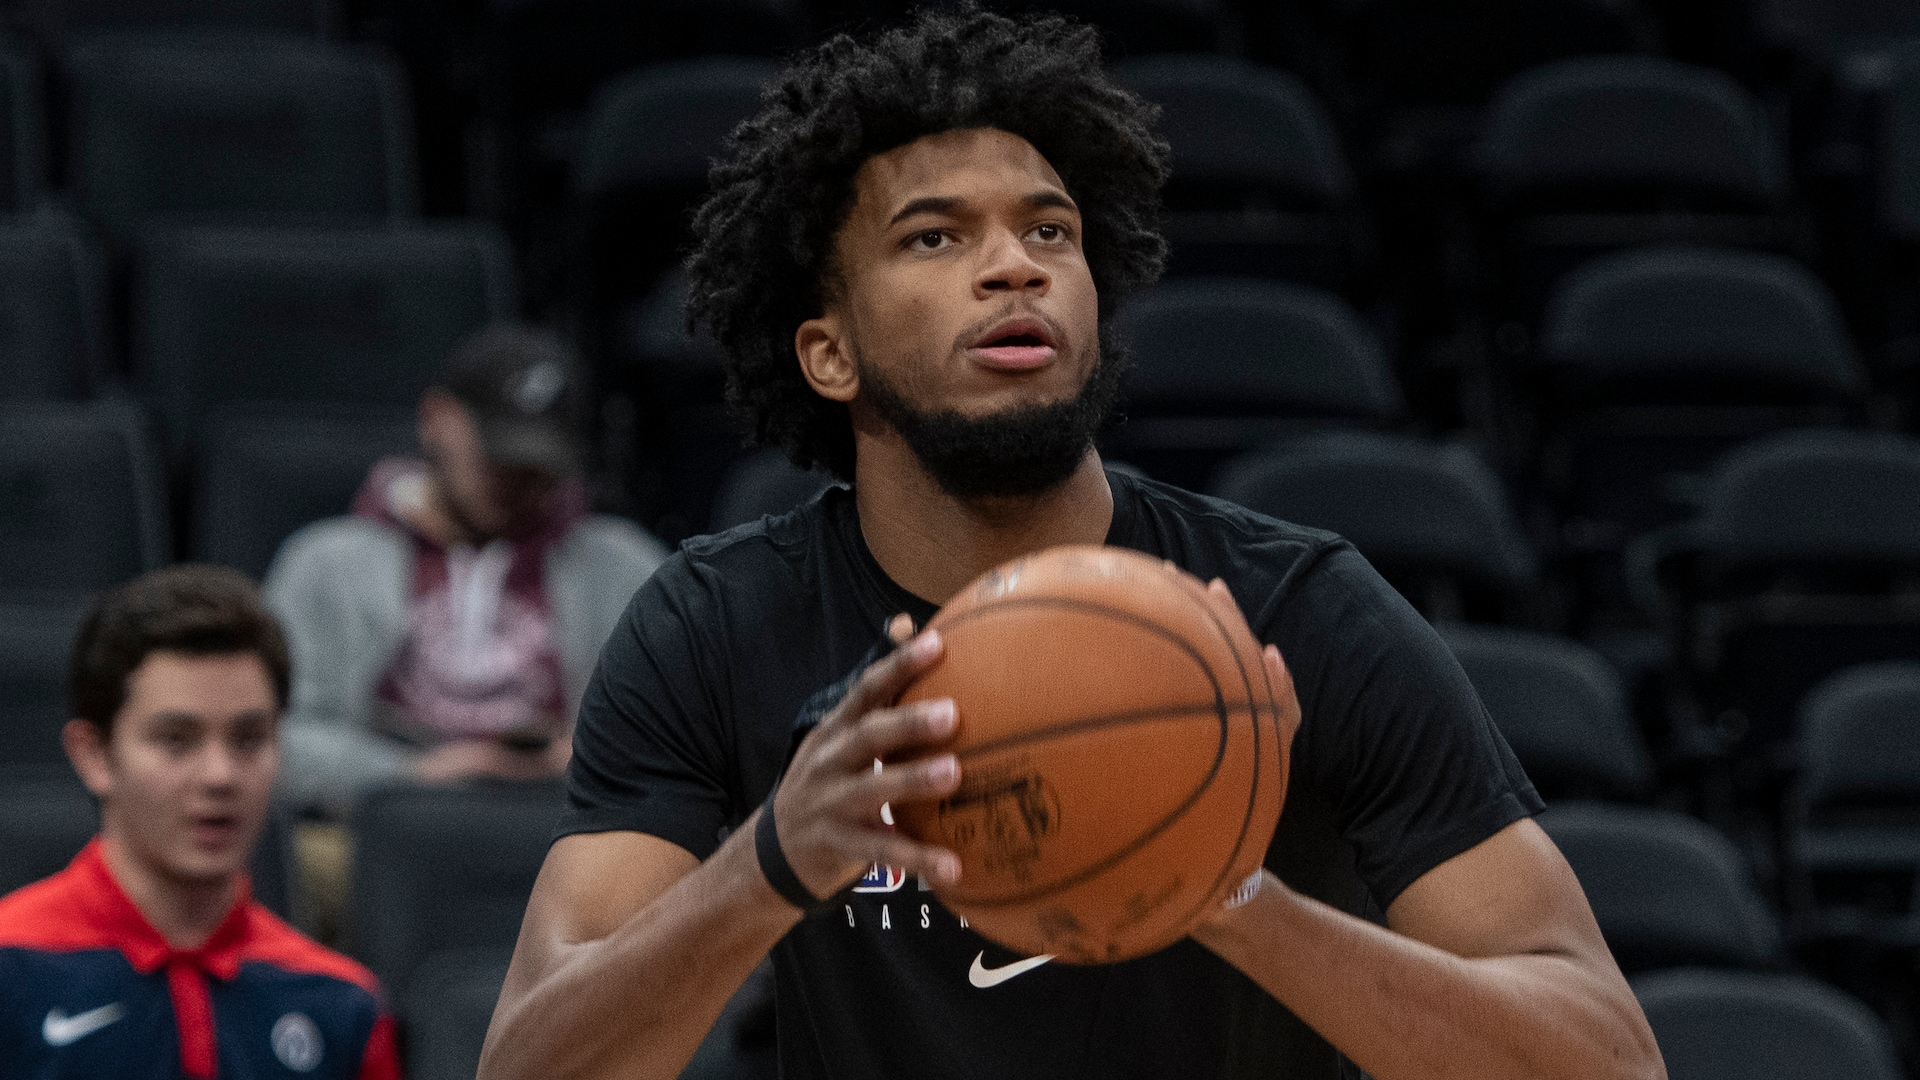 Kings' Marvin Bagley III (foot) out at least another 3 weeks